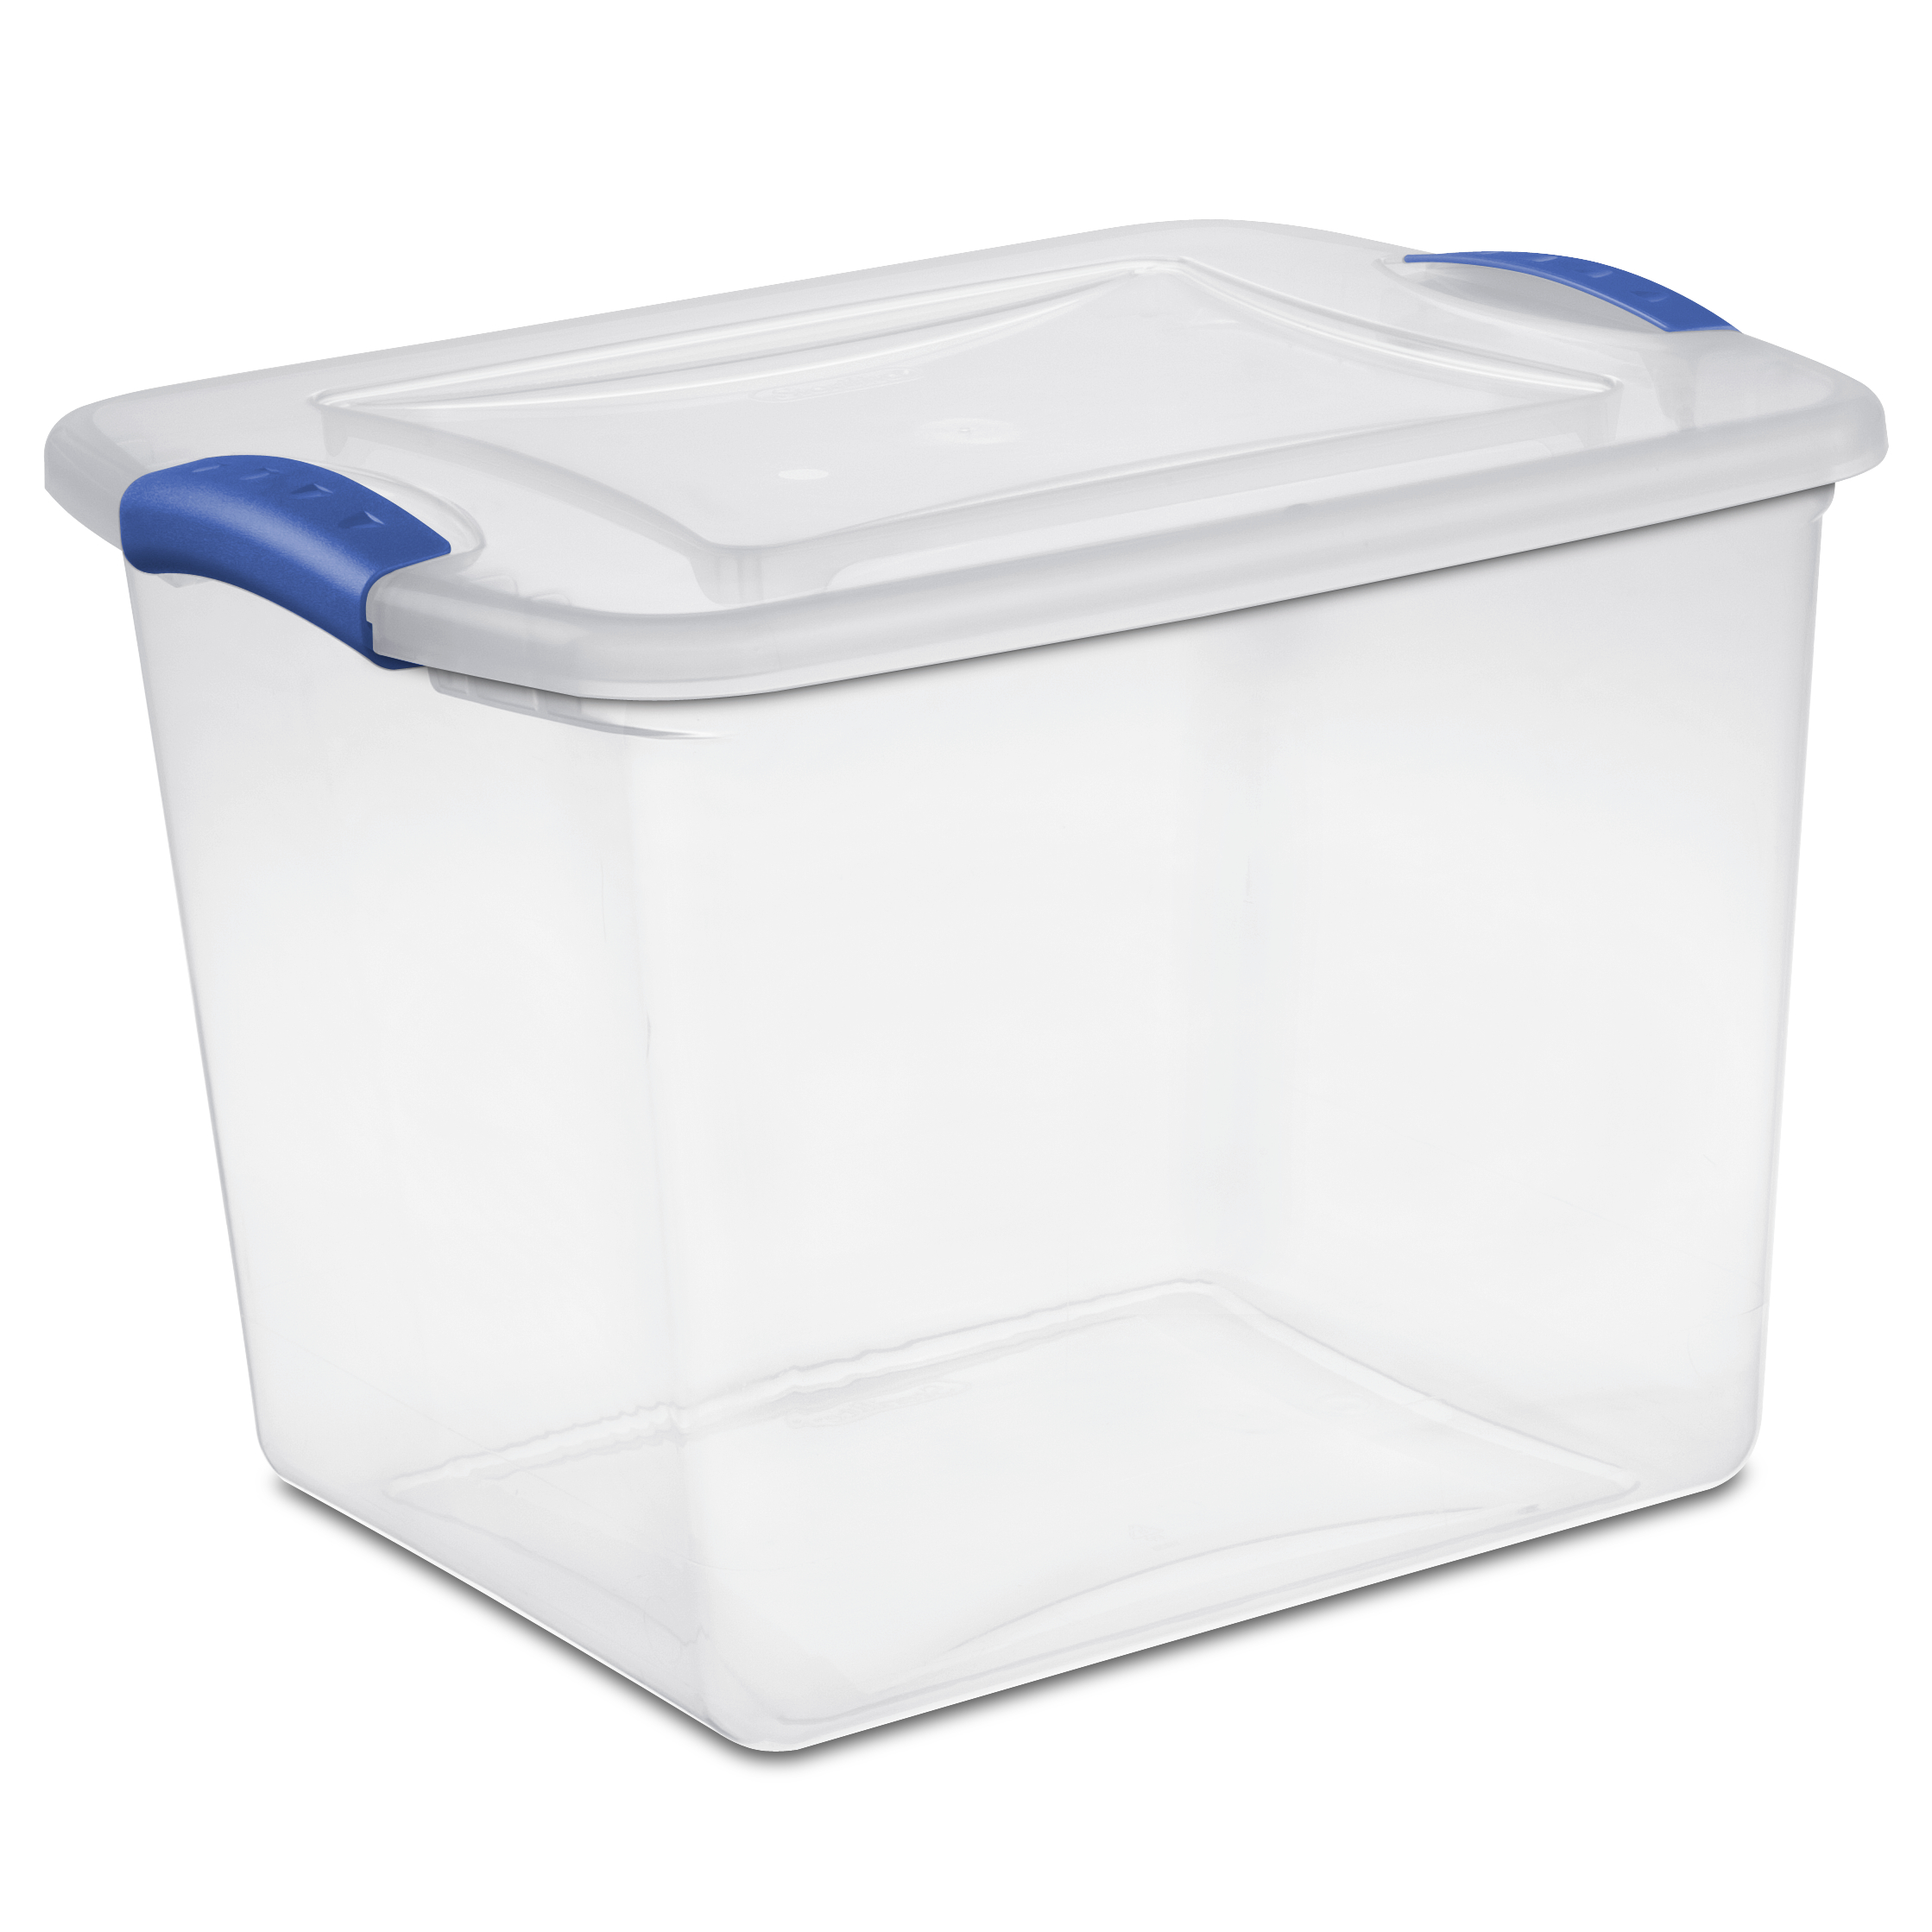 Sterilite 27 Quart Stadium Blue Latch Box, 2 Piece